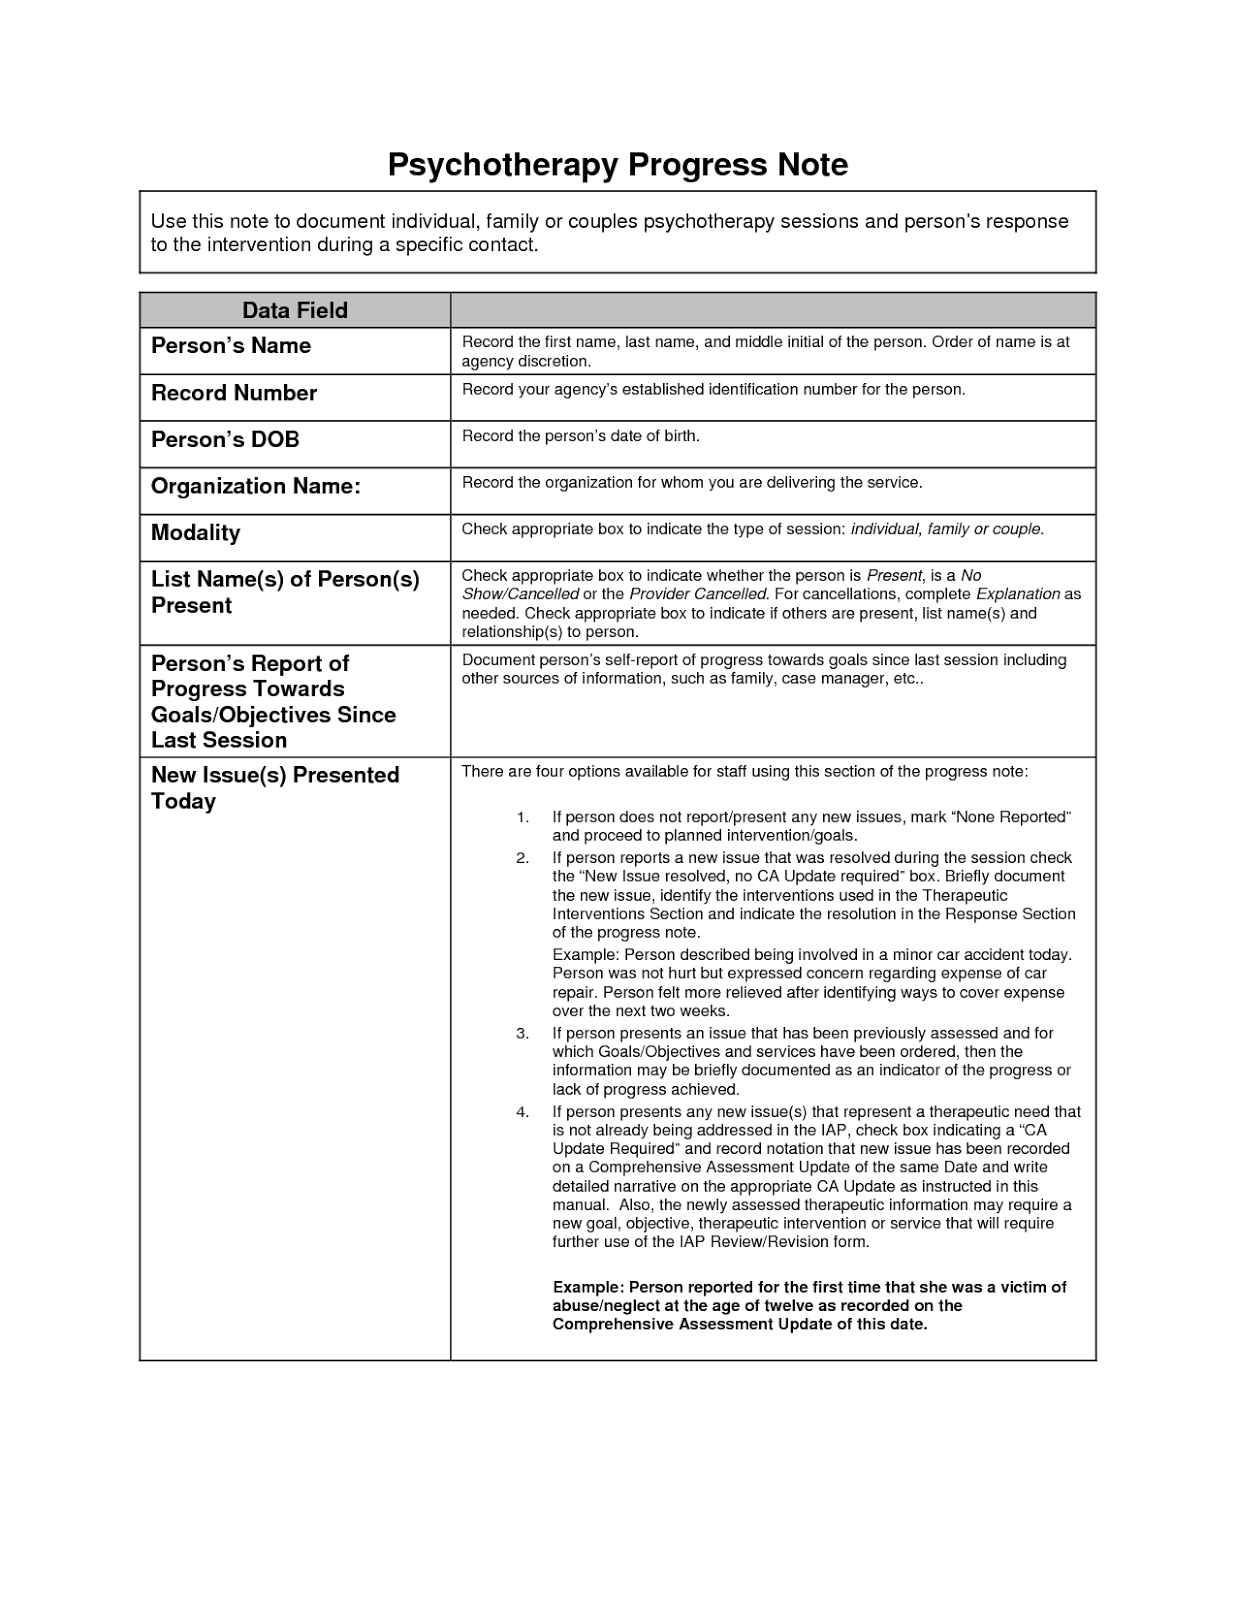 psychology progress note template - dap psychotherapy note templates 3 free word format d